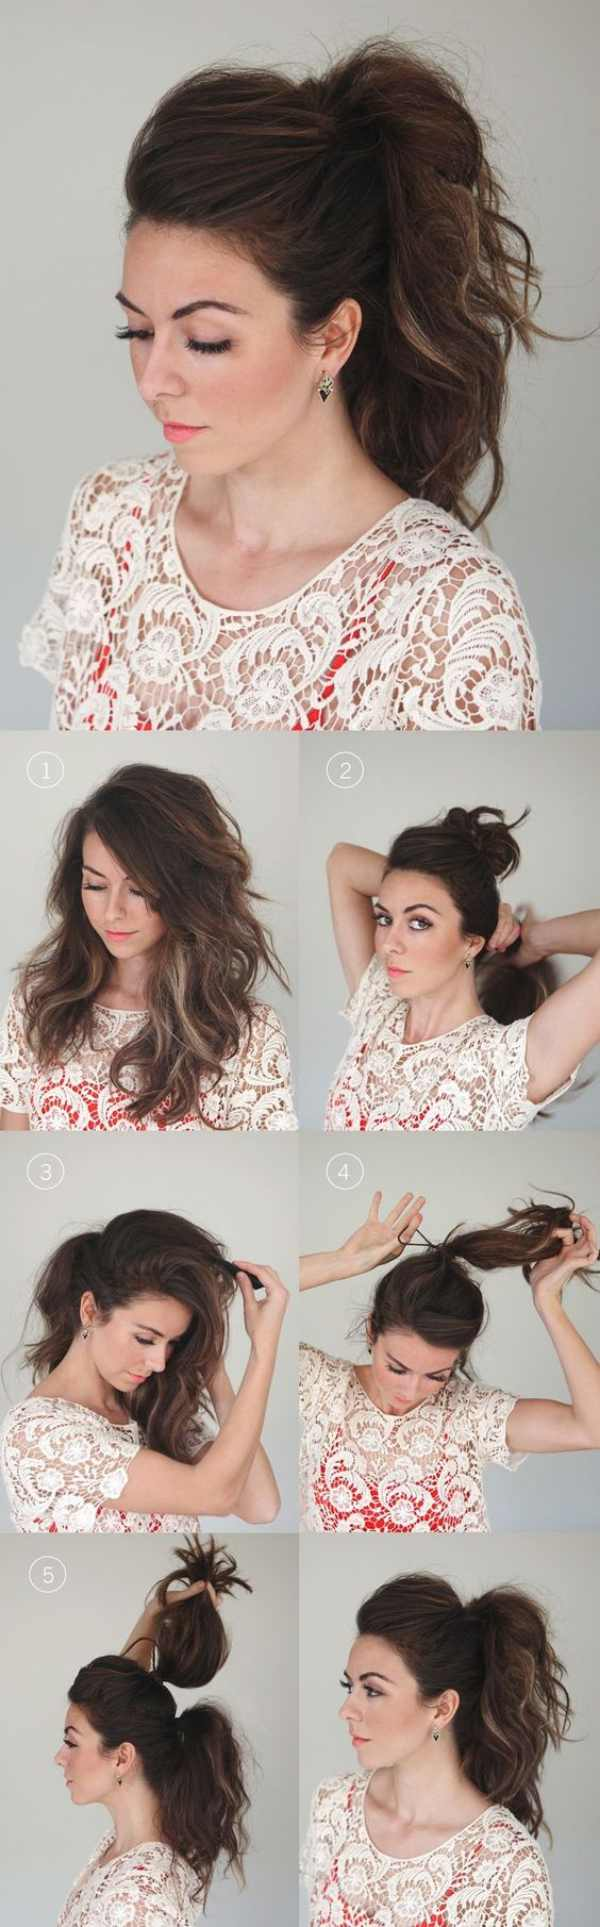 Hairstyles That Can be Done in 3 Minutes